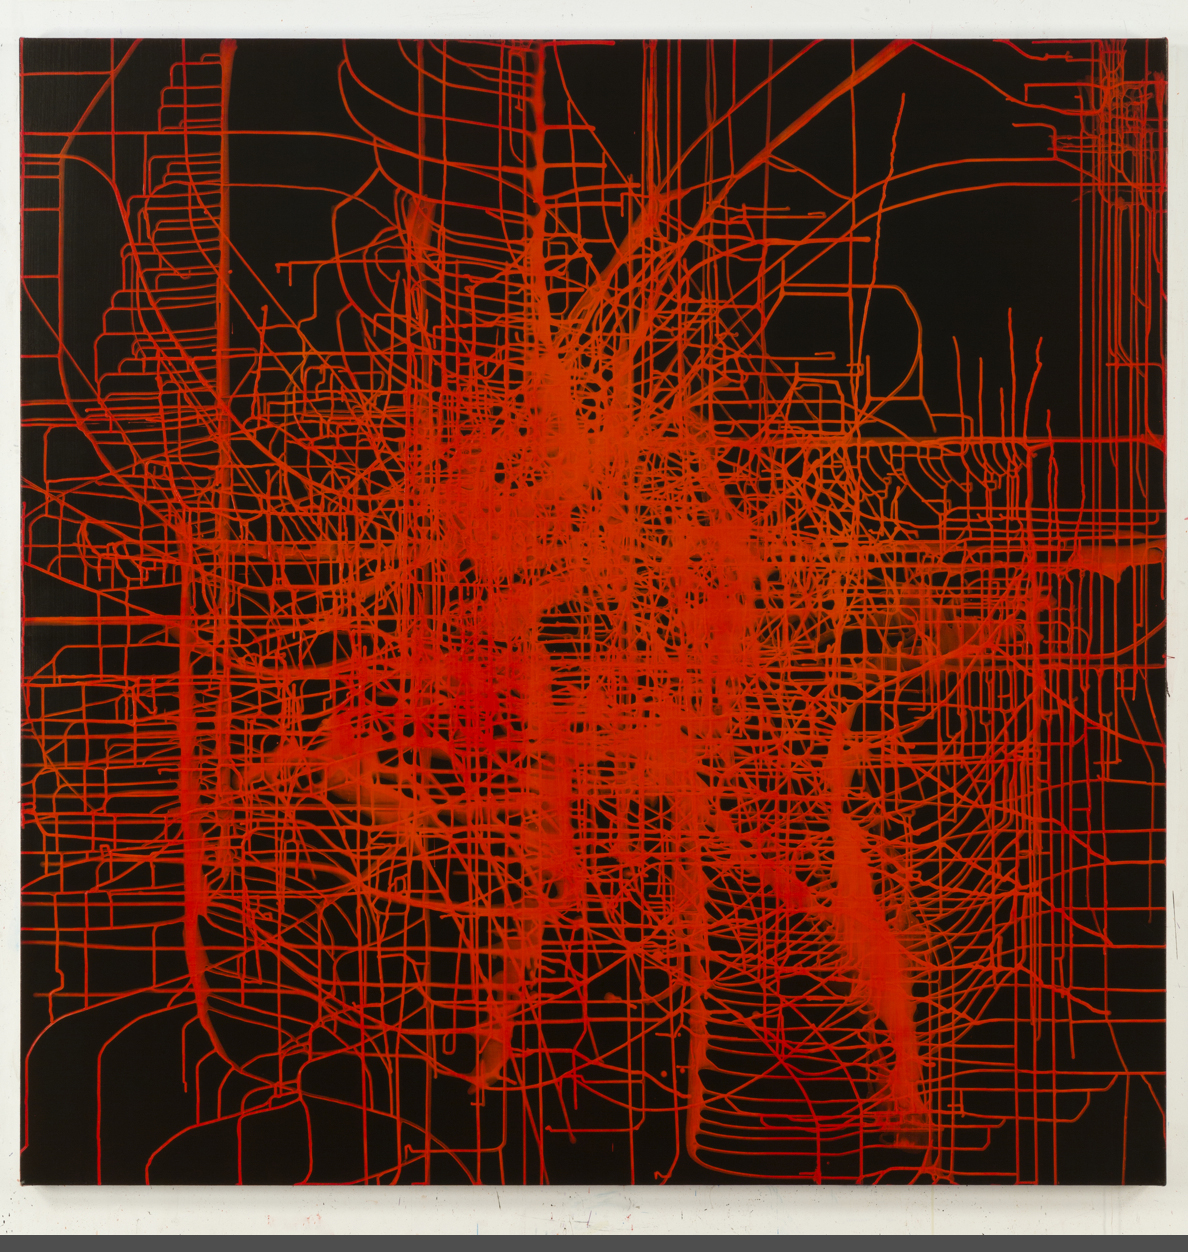 2016-COLD-STAR-II-2016-acrylic-and-oil-on-canvas-168-x-168-cm-1